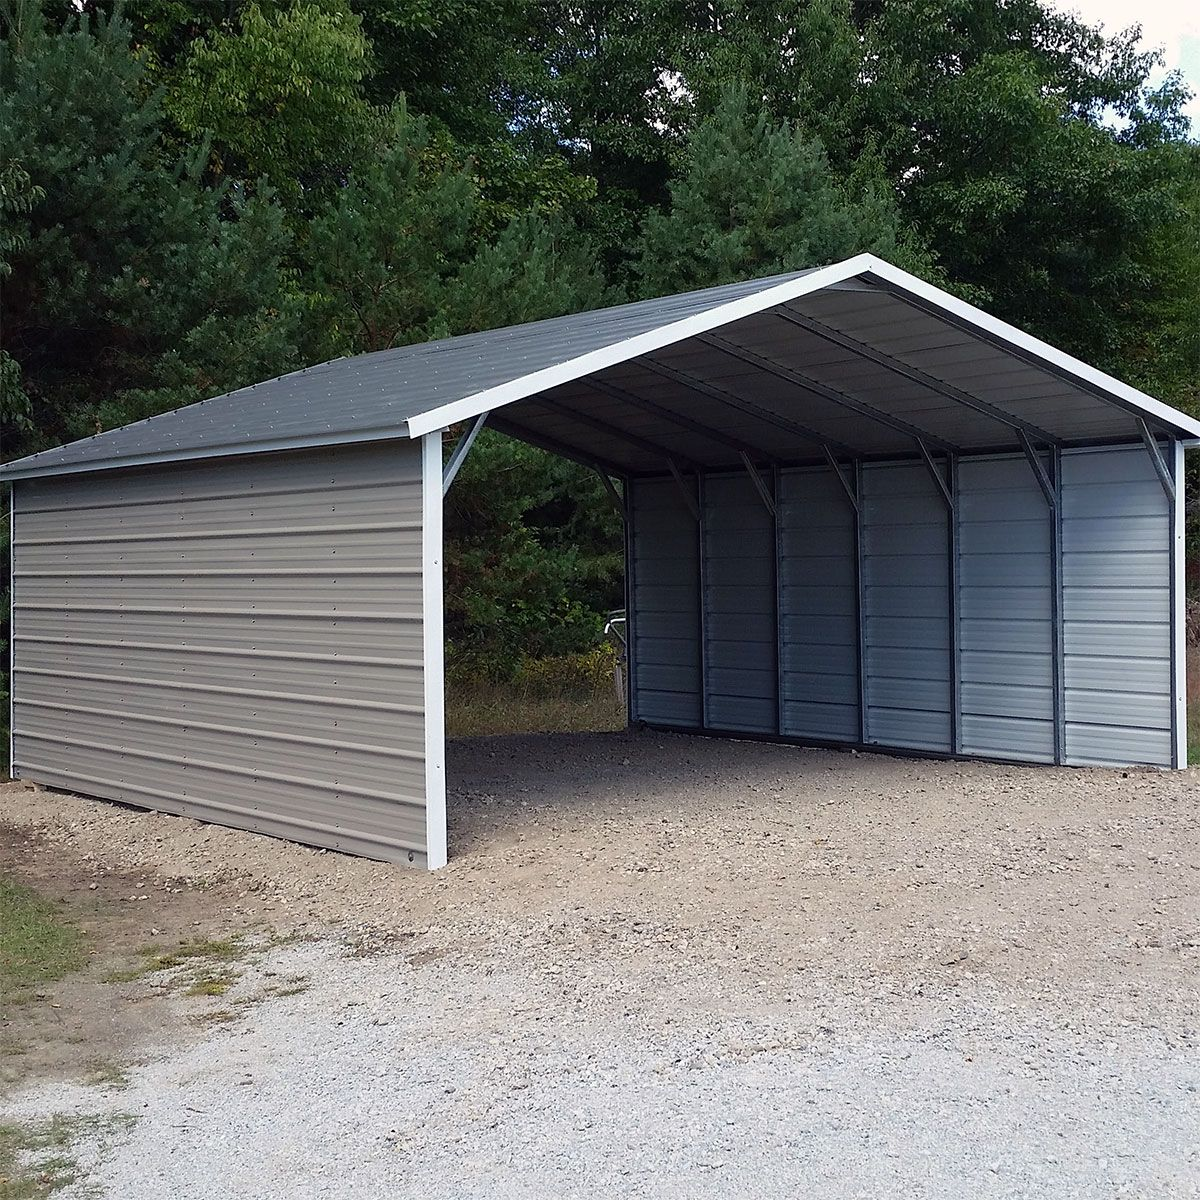 Shop Metal Carports Sheds And Garages Near Me Steel Carports Metal Carports Diy Carport